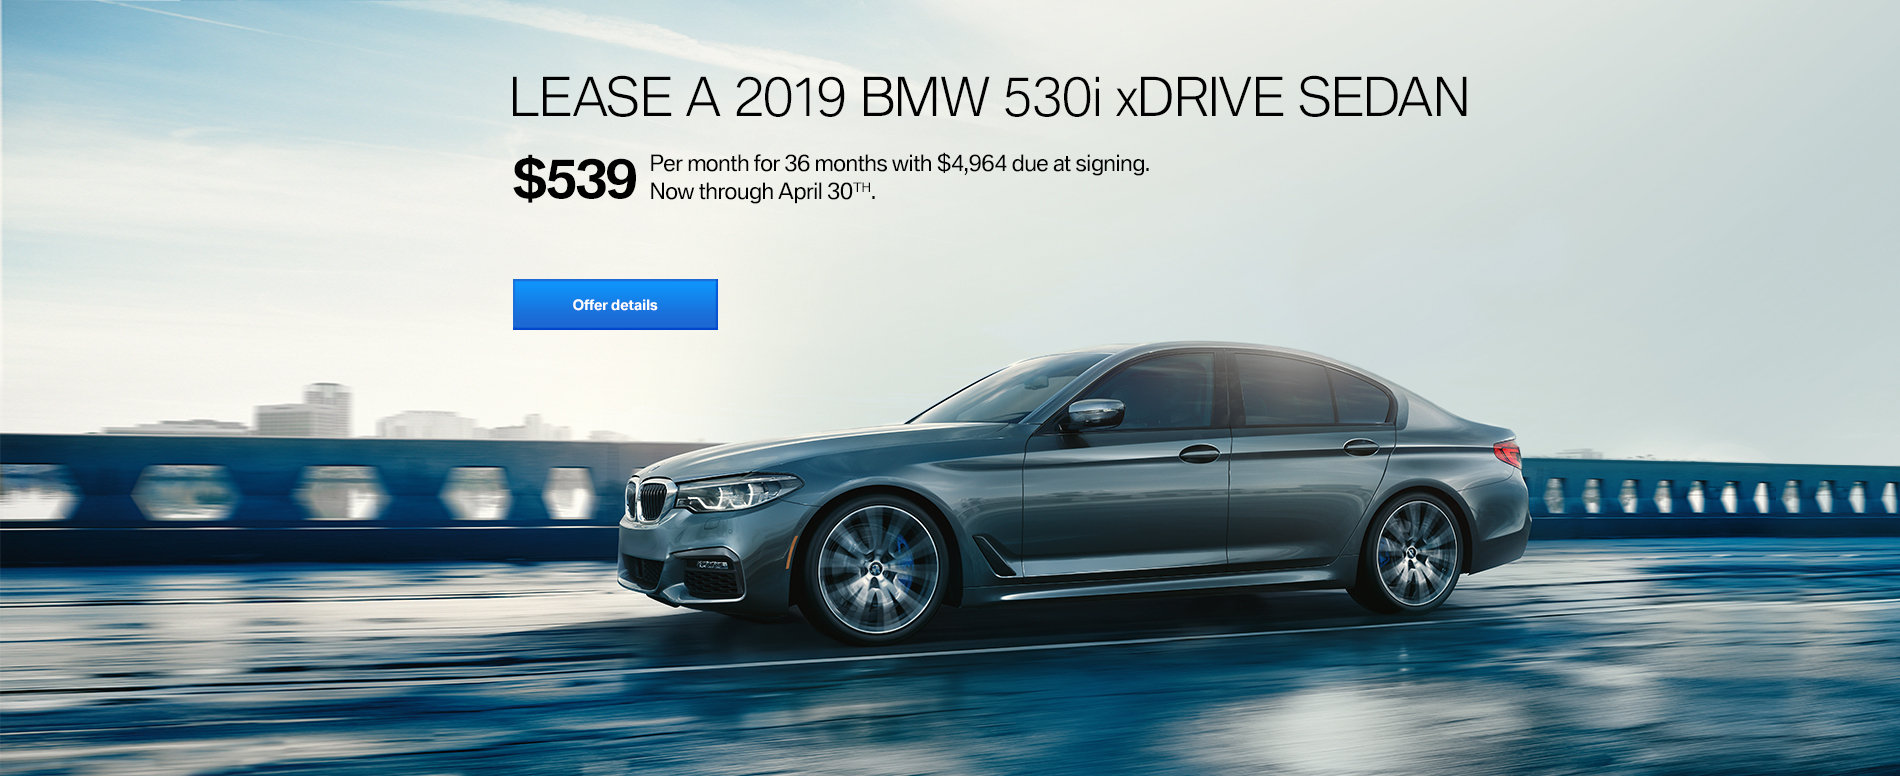 LEASE A 2019 BMW 530i xDRIVE FOR $539/MONTH FOR 36 MONTHS WITH $